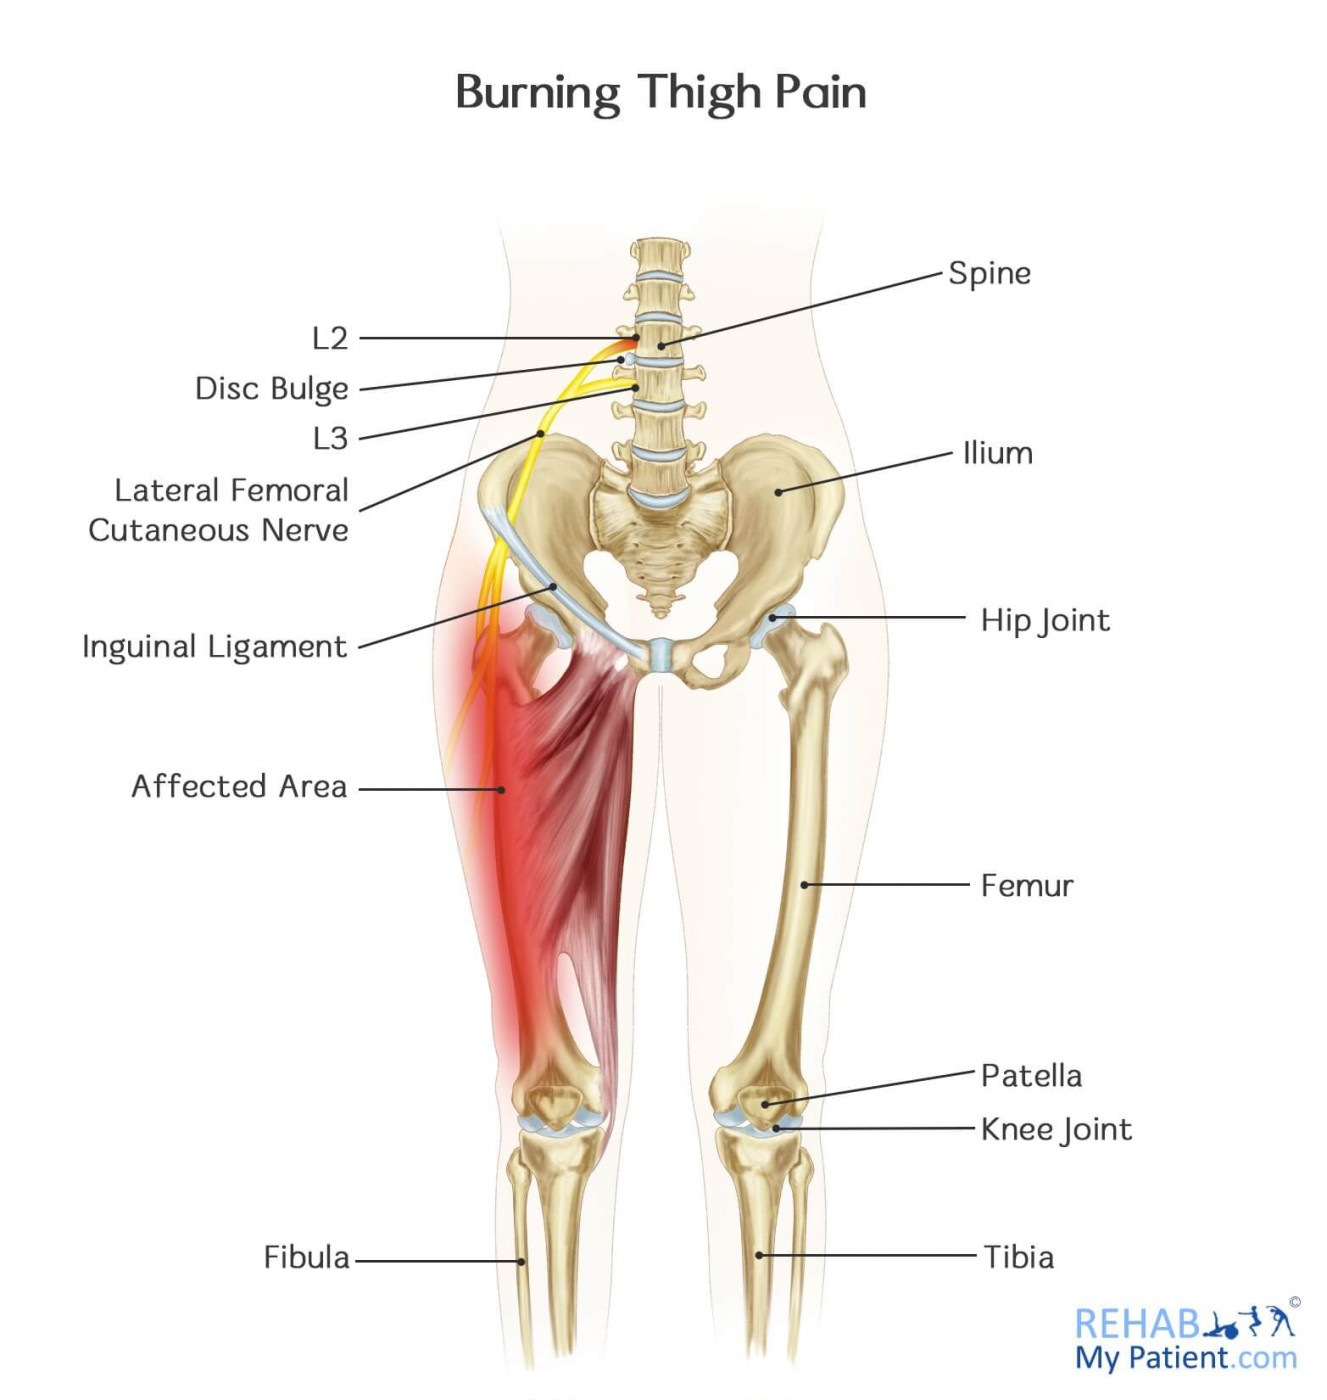 Burning Thigh Pain | Rehab My Patient